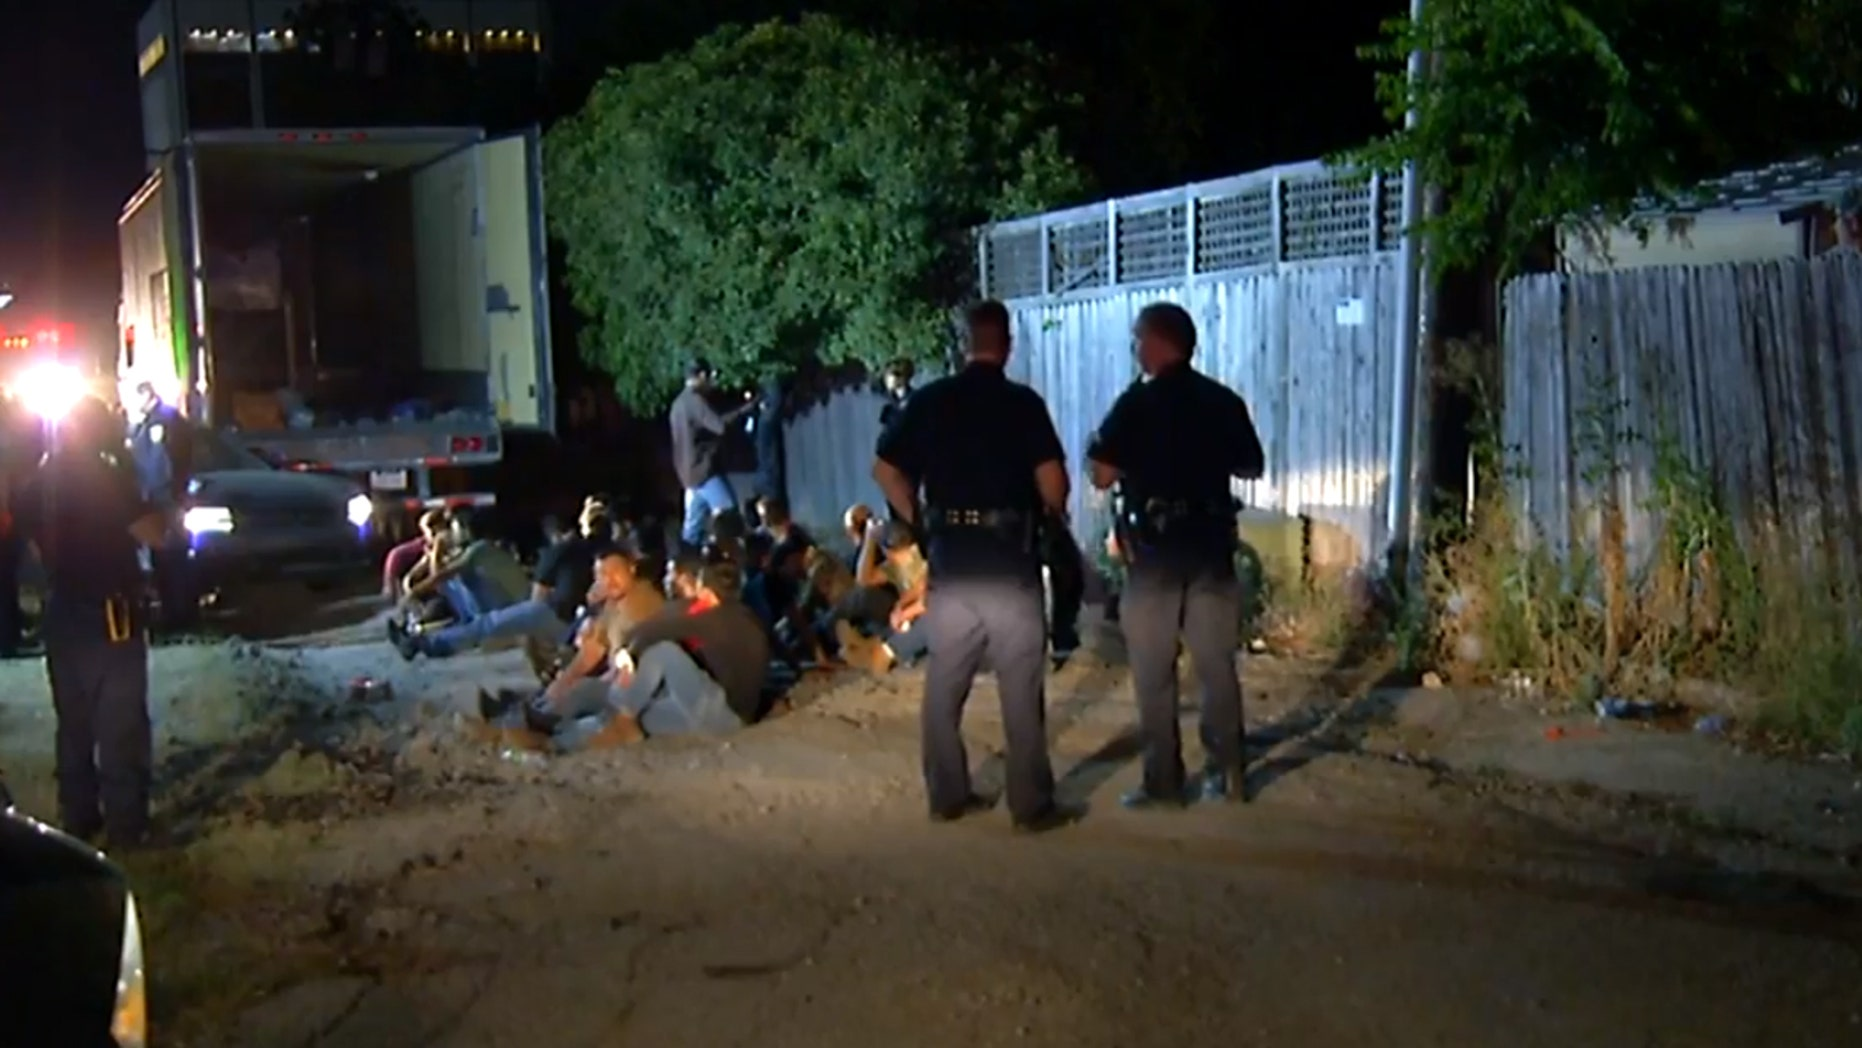 Dozens of illegal immigrants, including some children, were discovered in a tractor-trailer near the San Antonio International Airport in June, officials said. Some of those in the group told a reporter from FOX San Antonio they were from Guatemala, Mexico or Honduras.